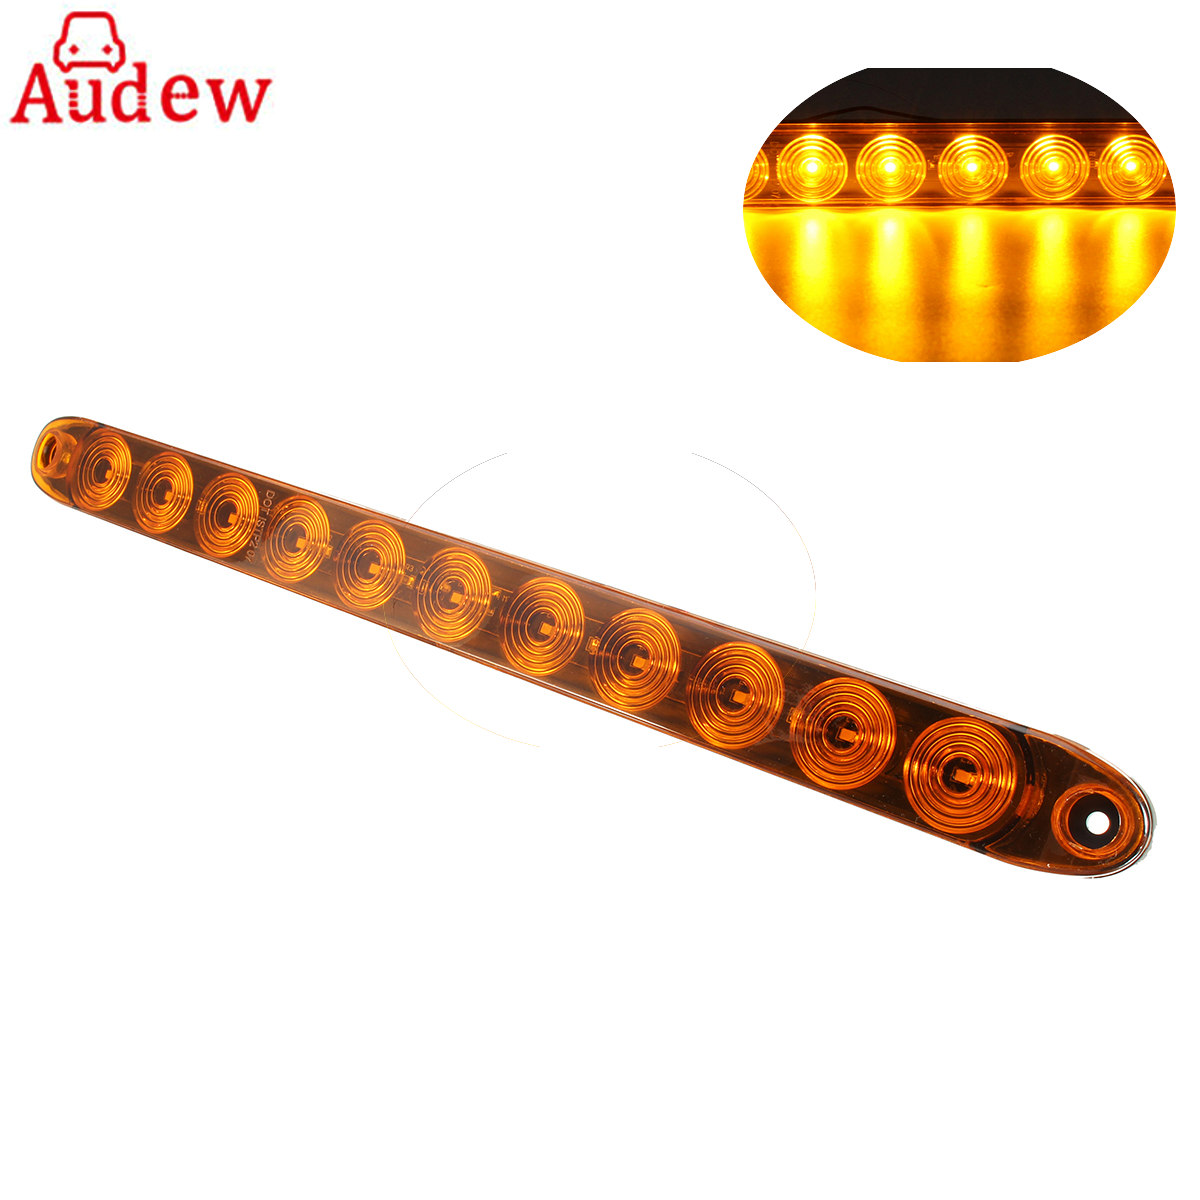 15 Amber Car Side Light 11 LED Tail Turn Signal Clearance Marker Light Bar Submersible for Trailer Truck automobile paired ol jt03 led automobile tail light